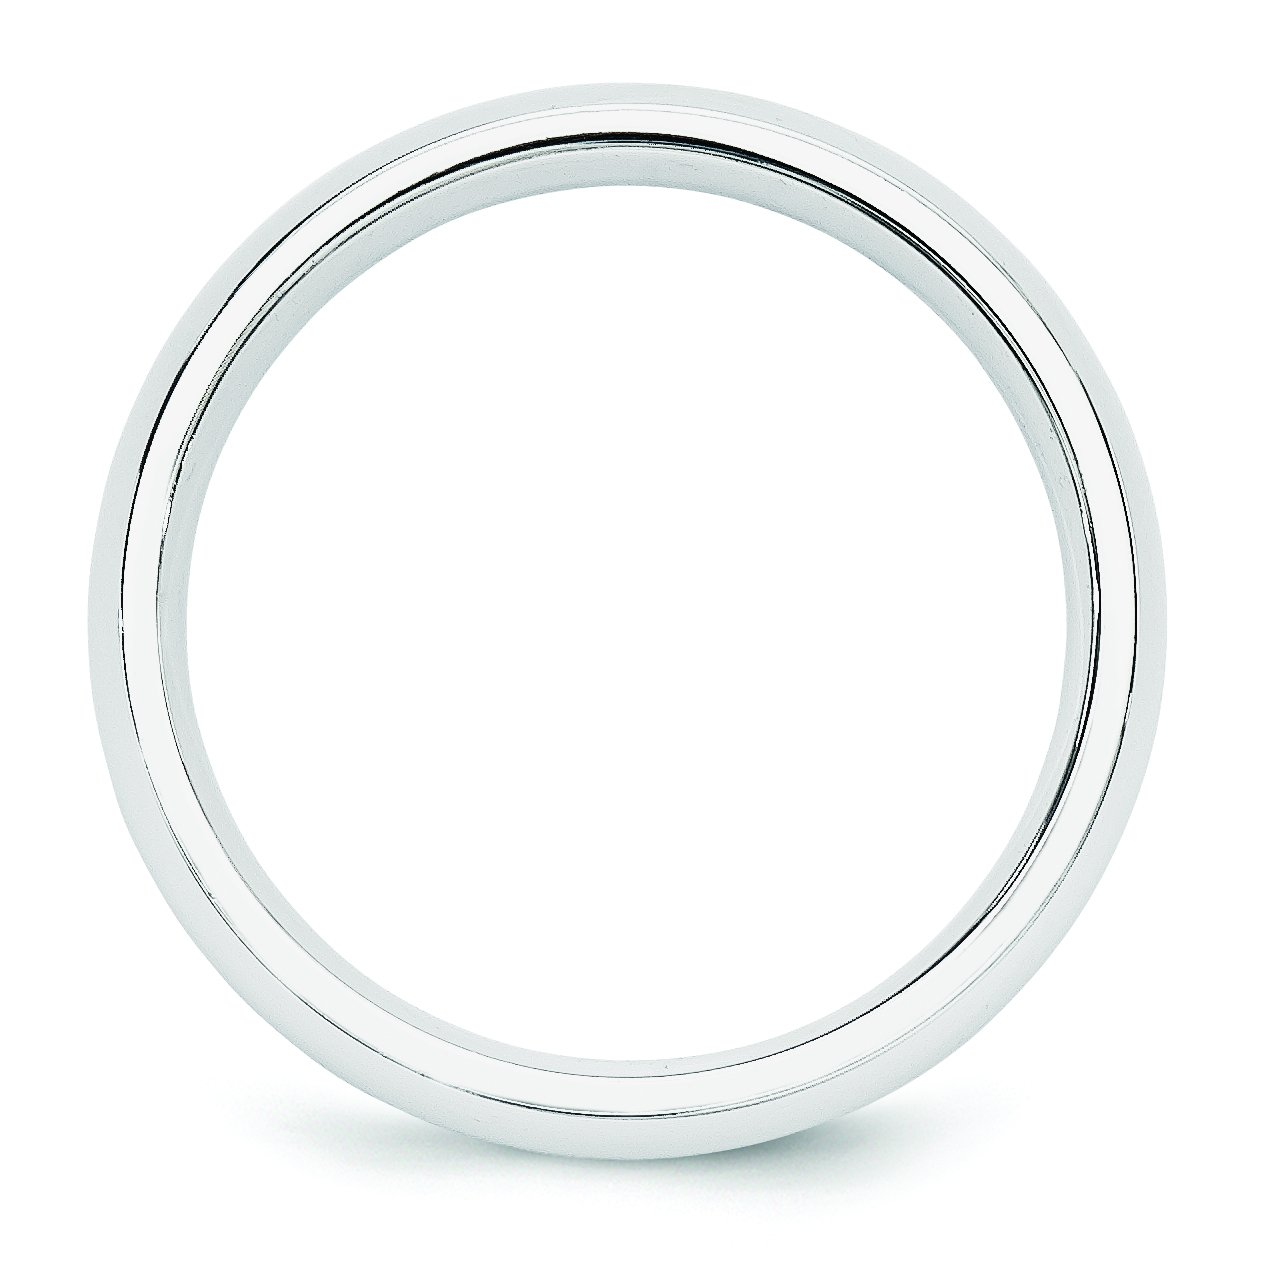 14k White Gold 5mm Standard Comfort Fit Band Size 14 by Saris and Things (Image #2)